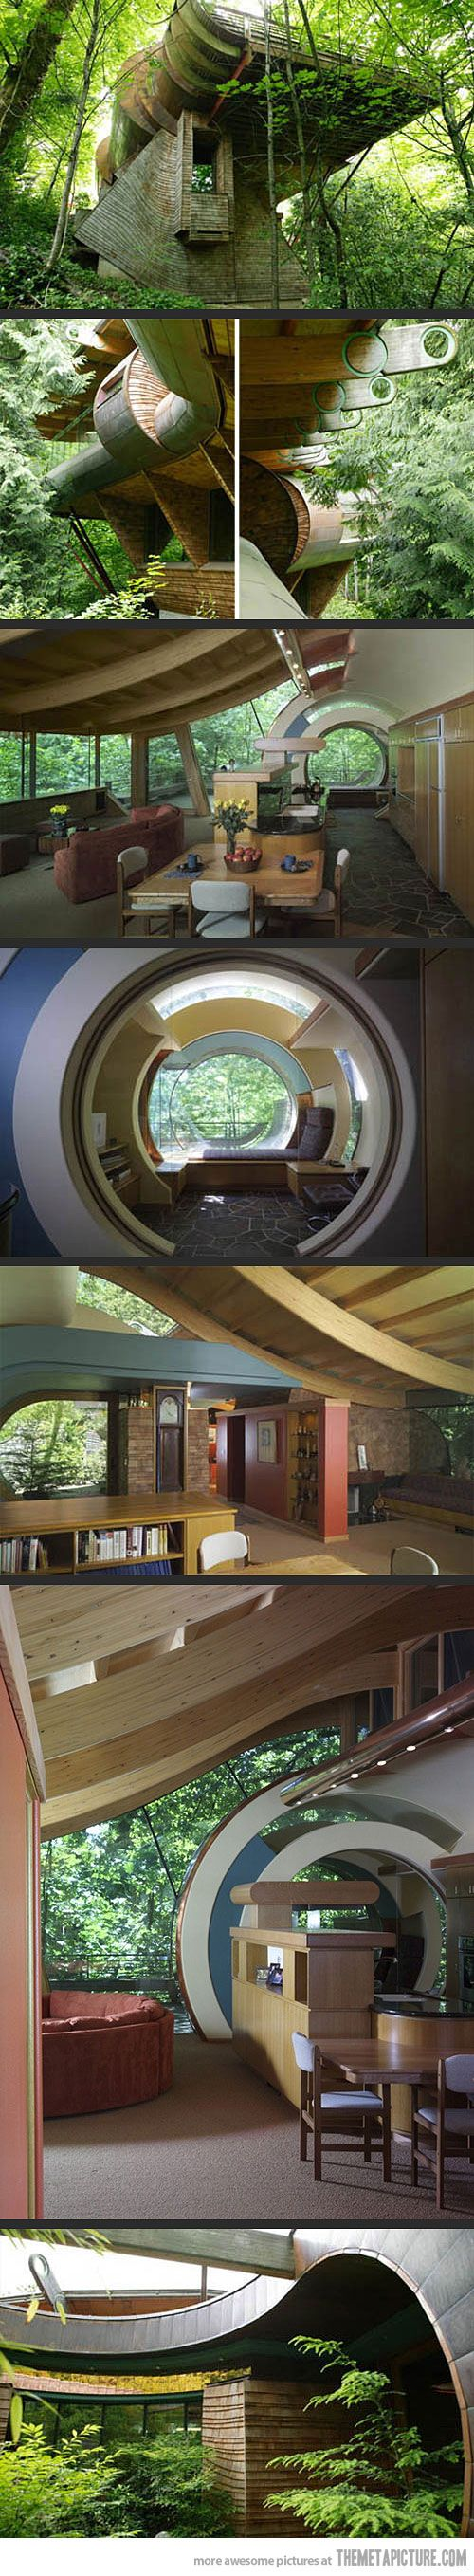 so cool. Tree house?